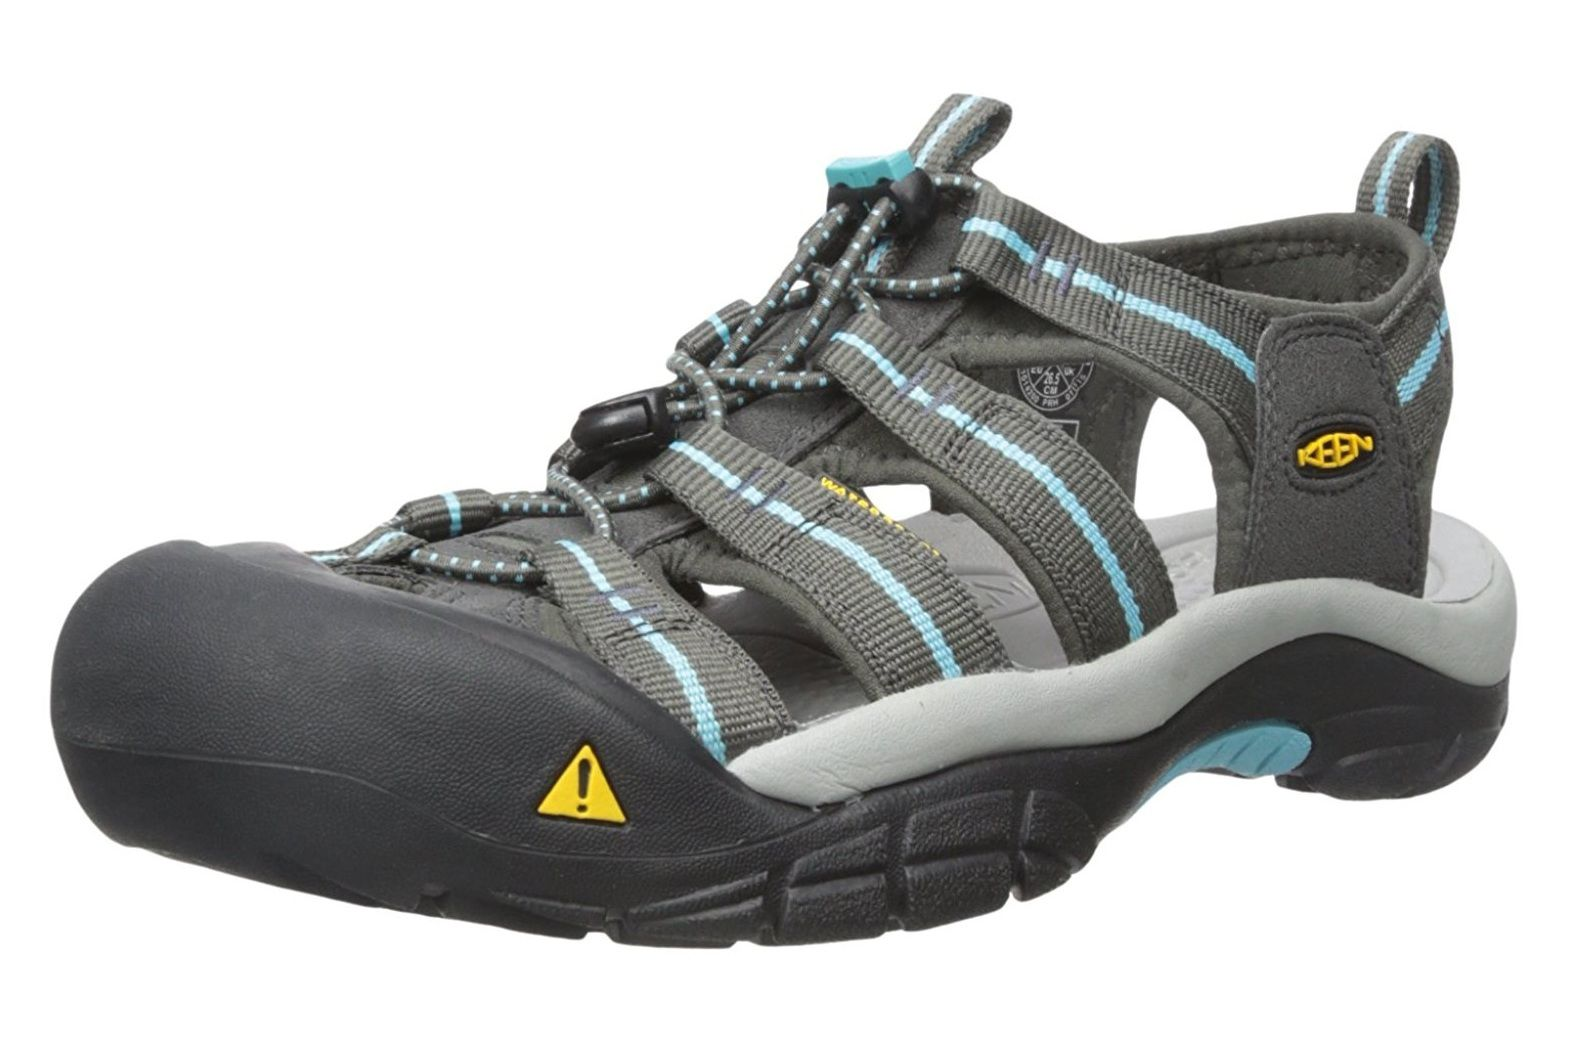 80d16dedf3c The 9 Best Walking Sandals of 2019